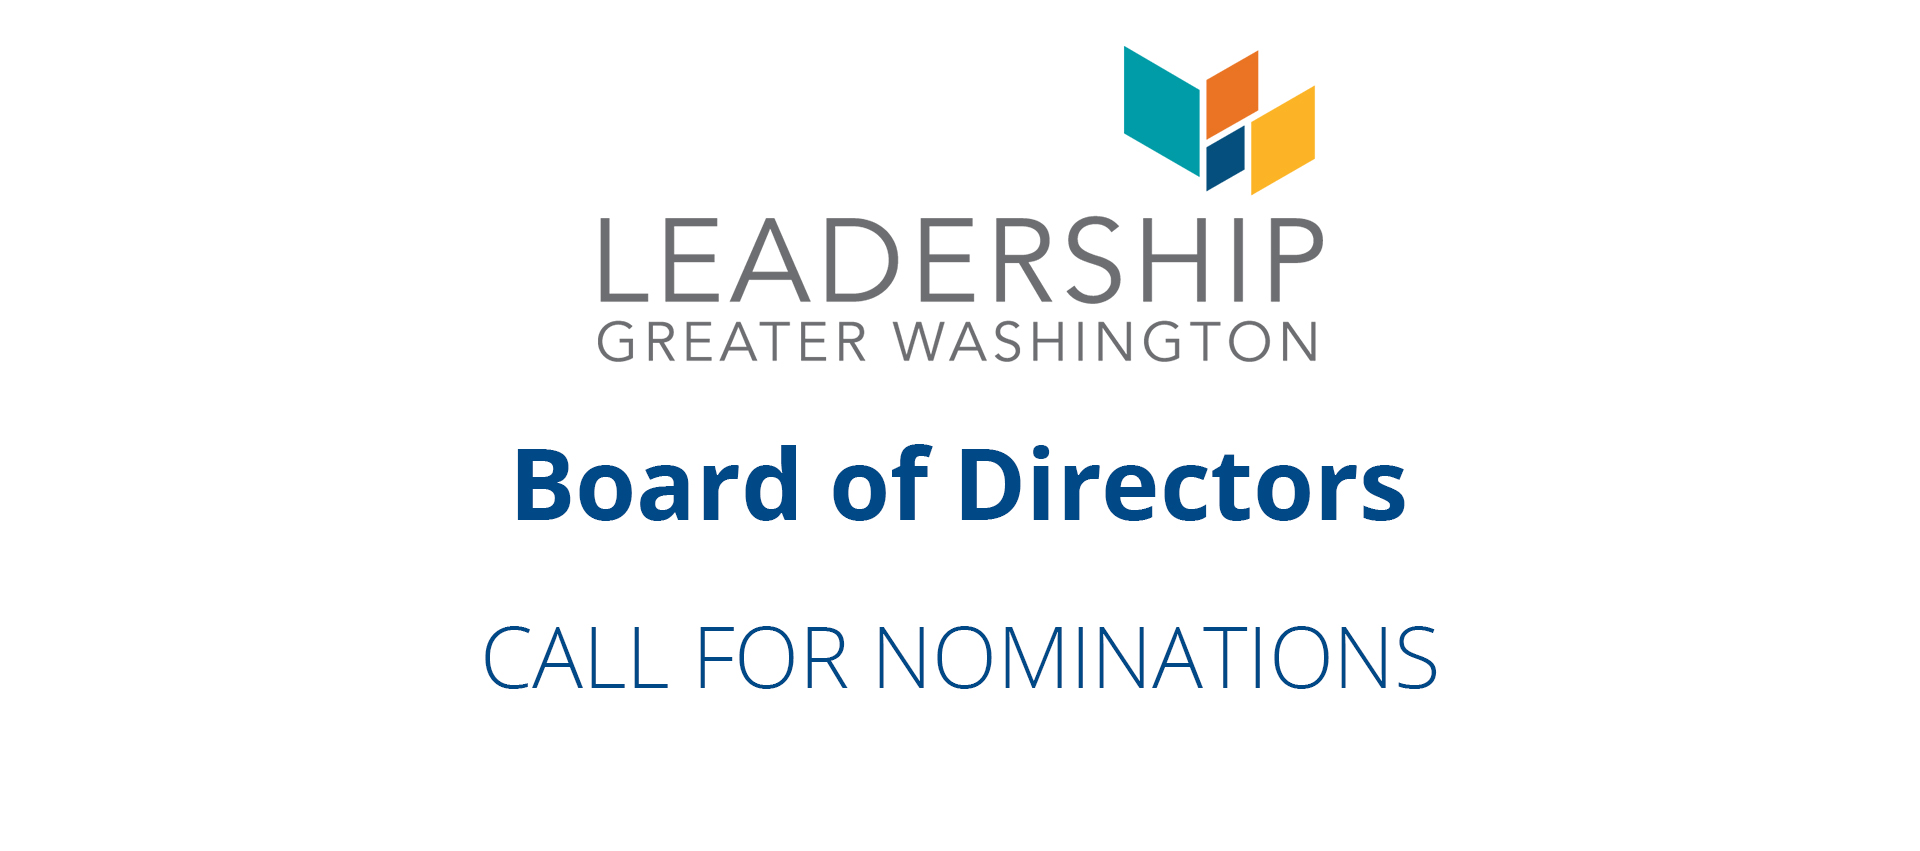 Board of Directors - Call for Nominations